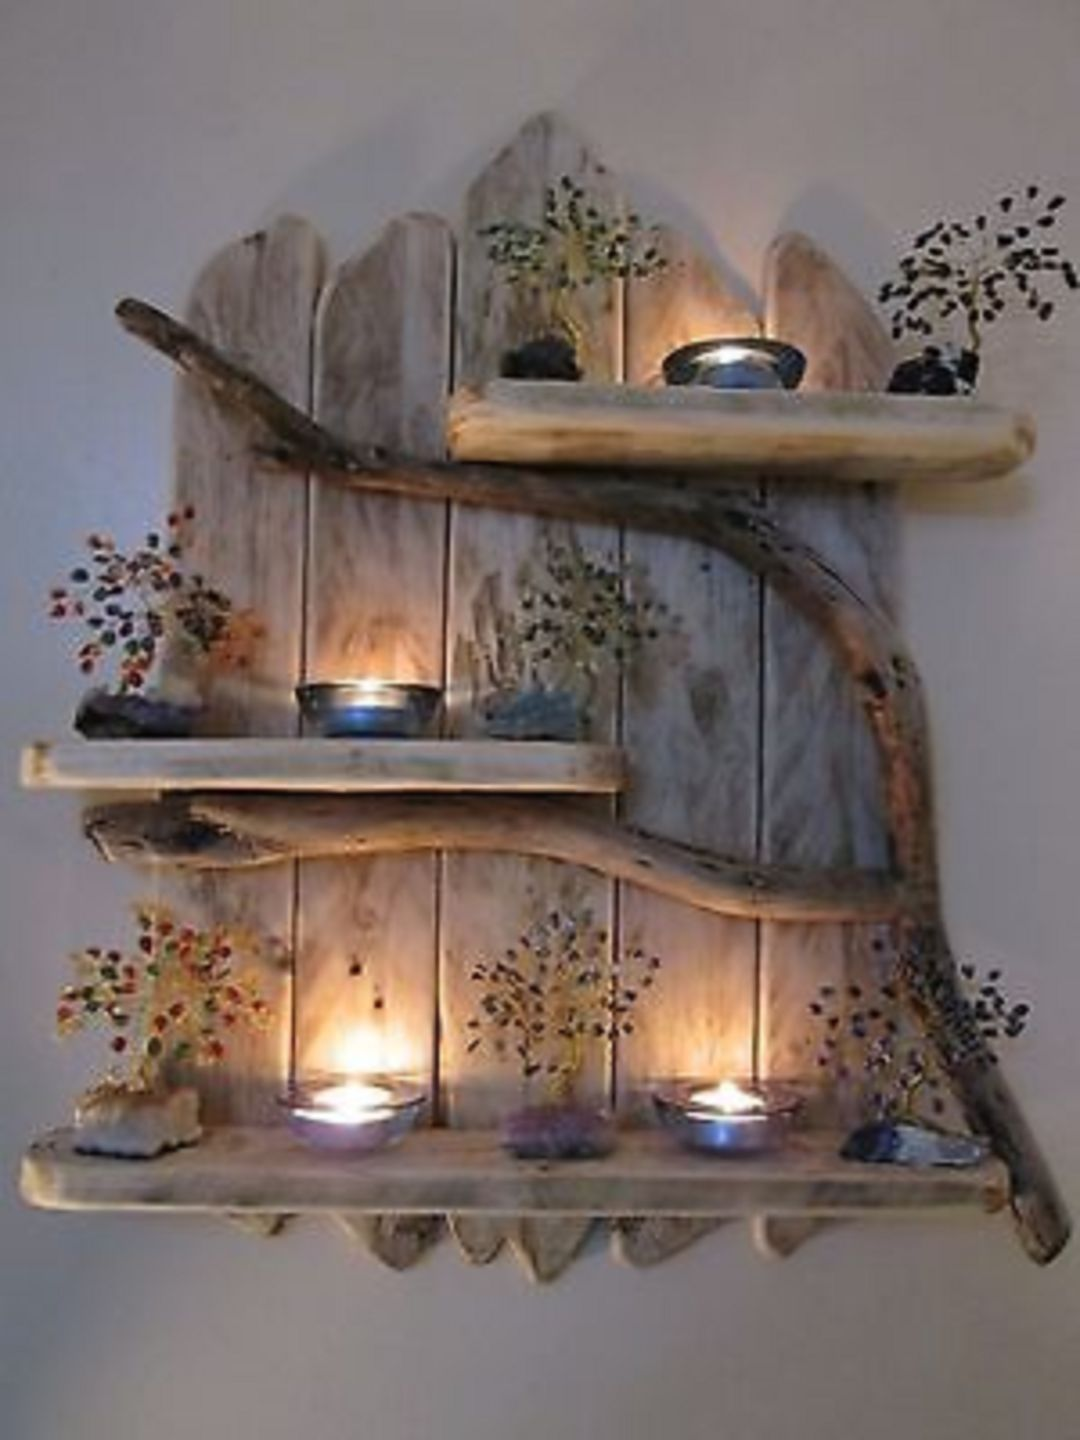 Awesome Rustic Home Decor Ideas 1430 | Retro, Rustic style ...